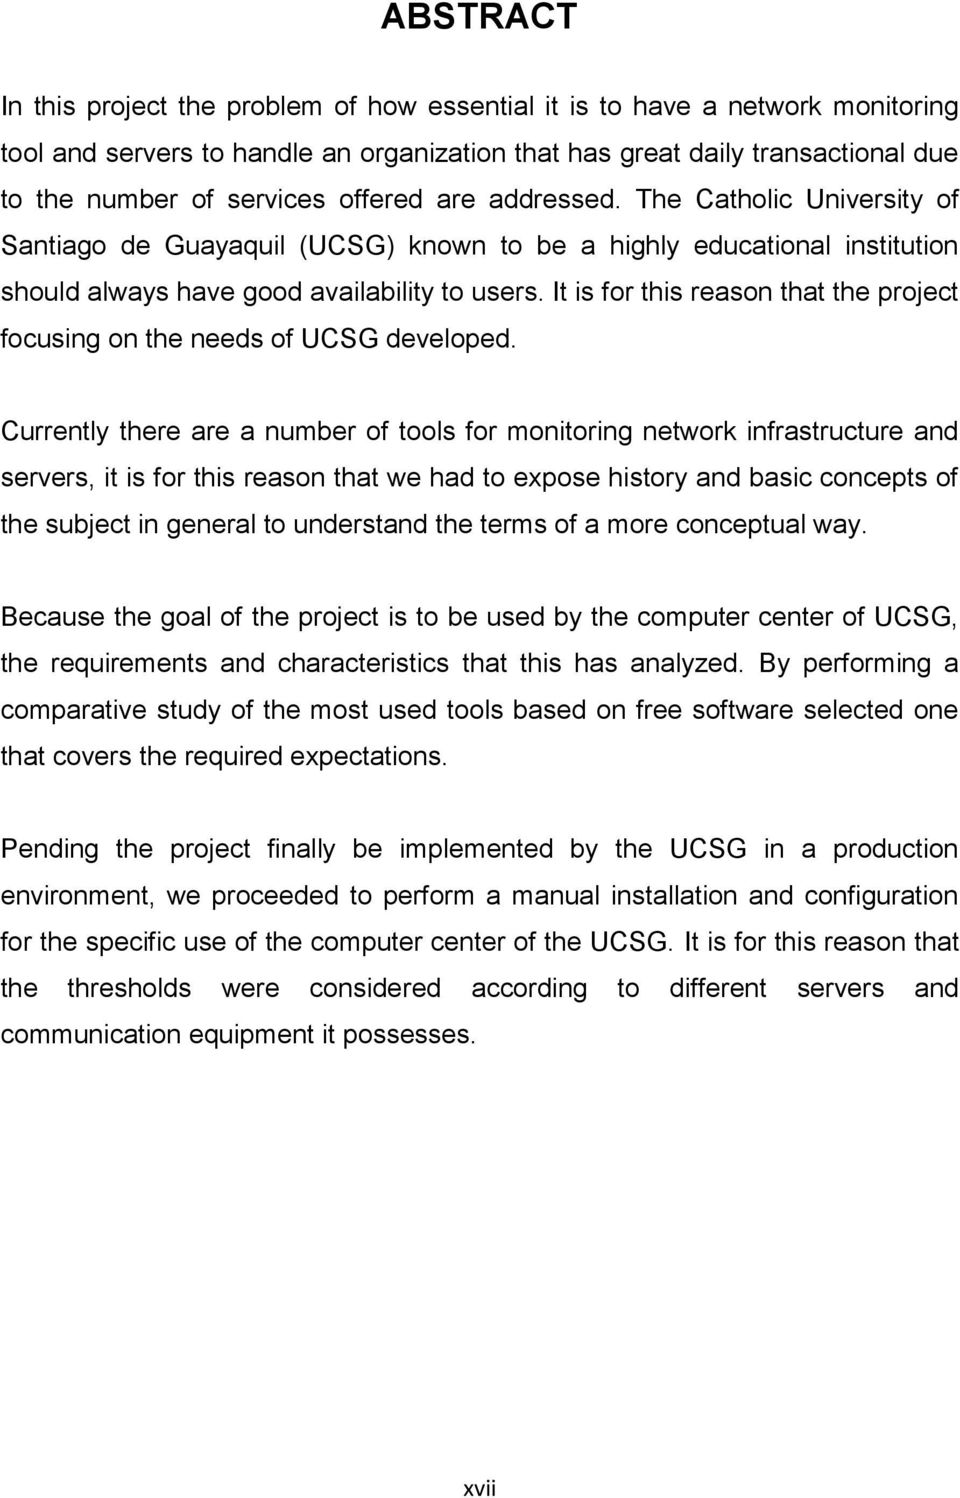 It is for this reason that the project focusing on the needs of UCSG developed.